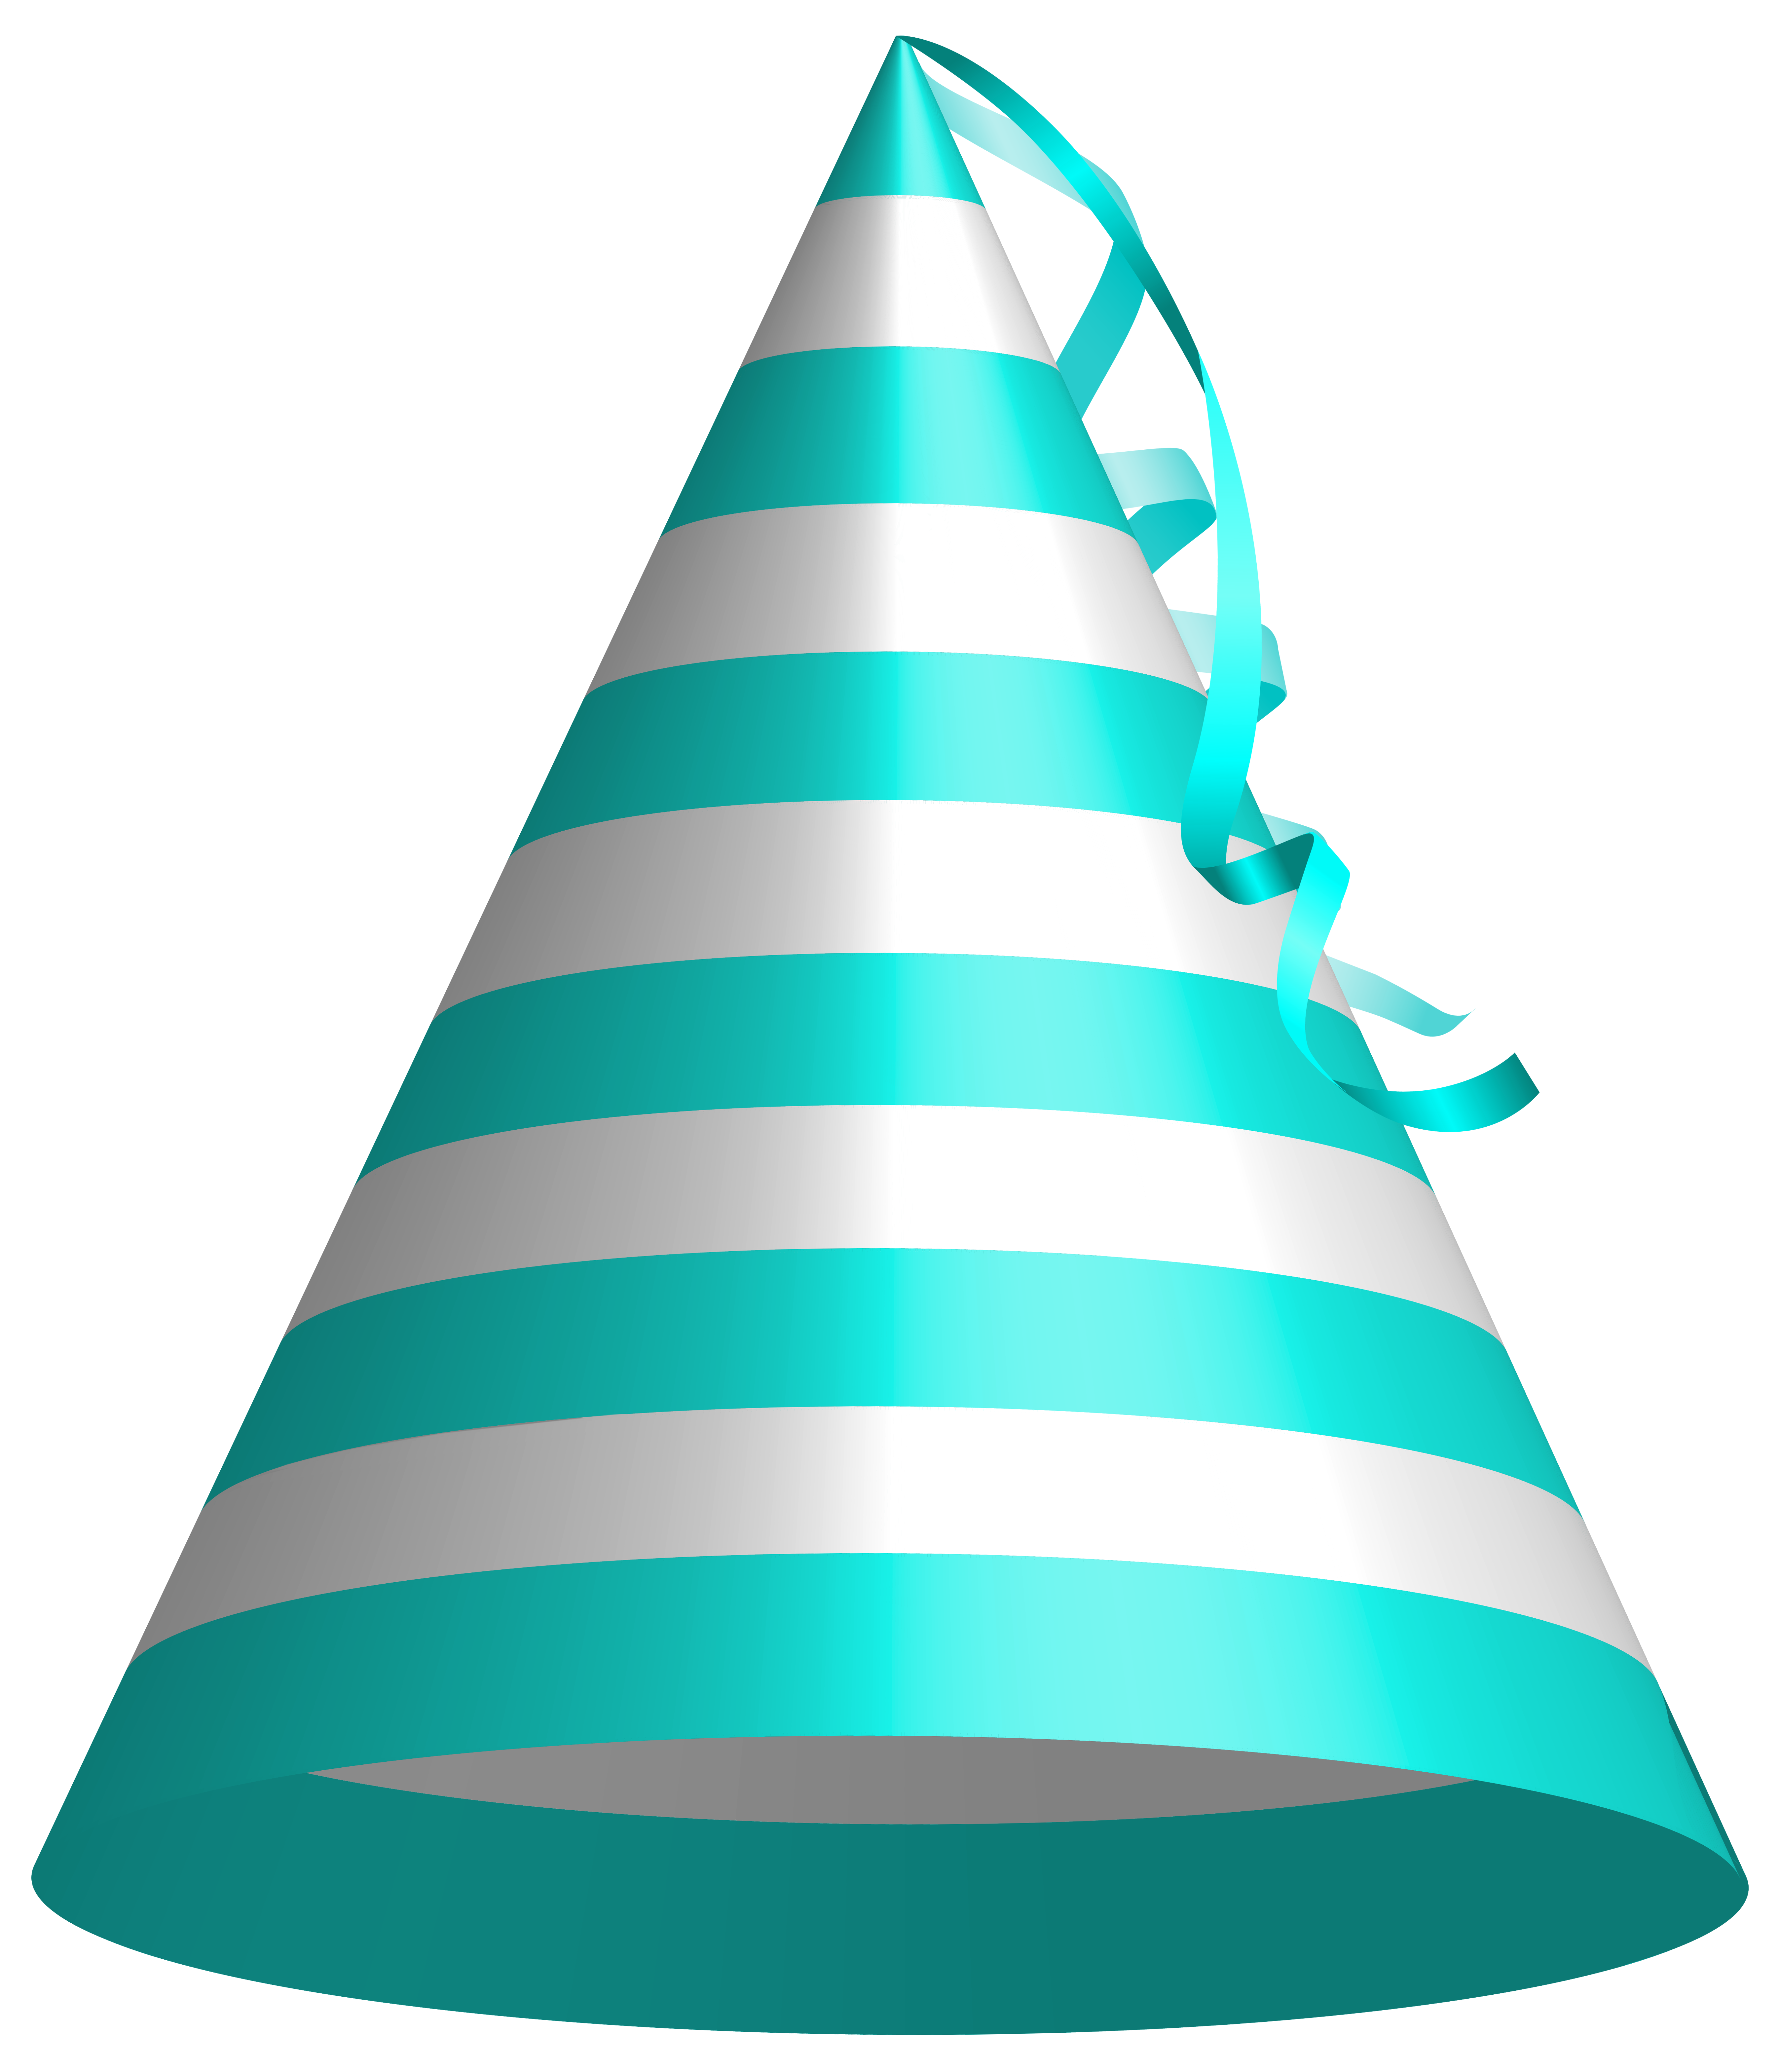 5385x6271 Birthday Hat Transparent Background Birthday Party Hat Png